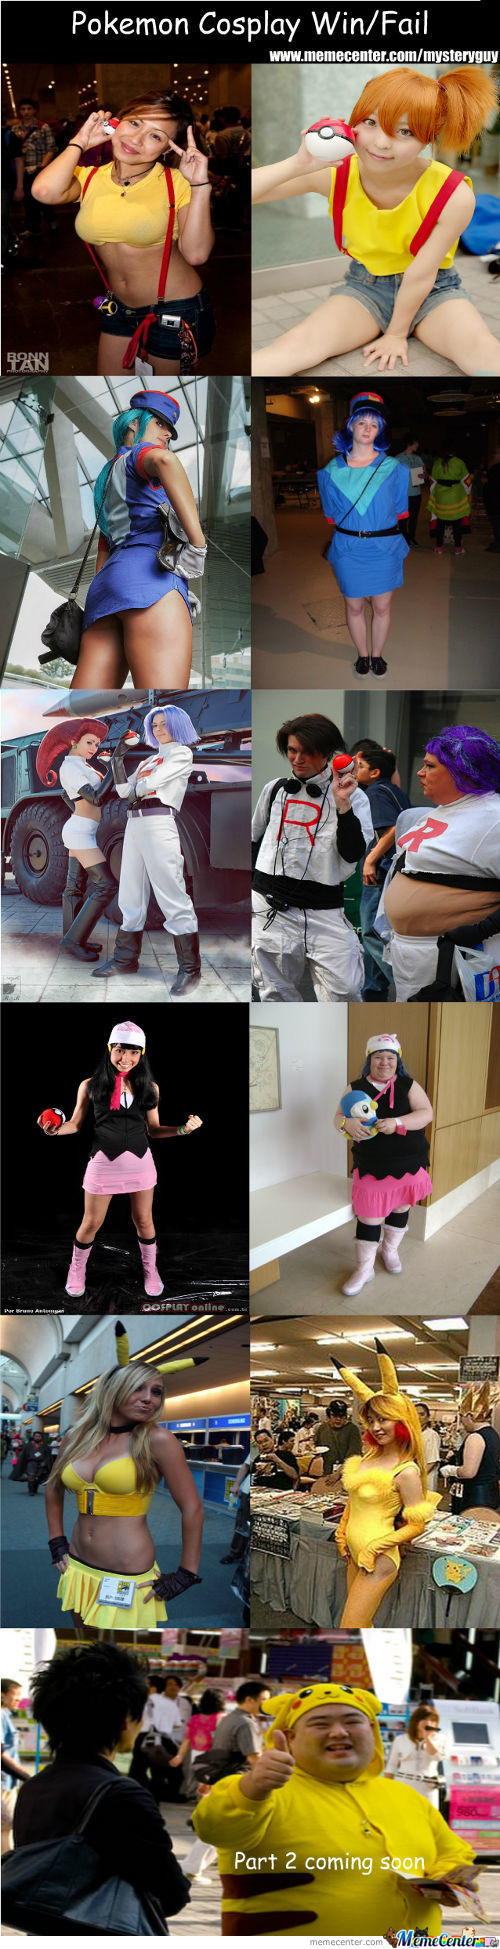 Pokemon Cosplay Win/fail